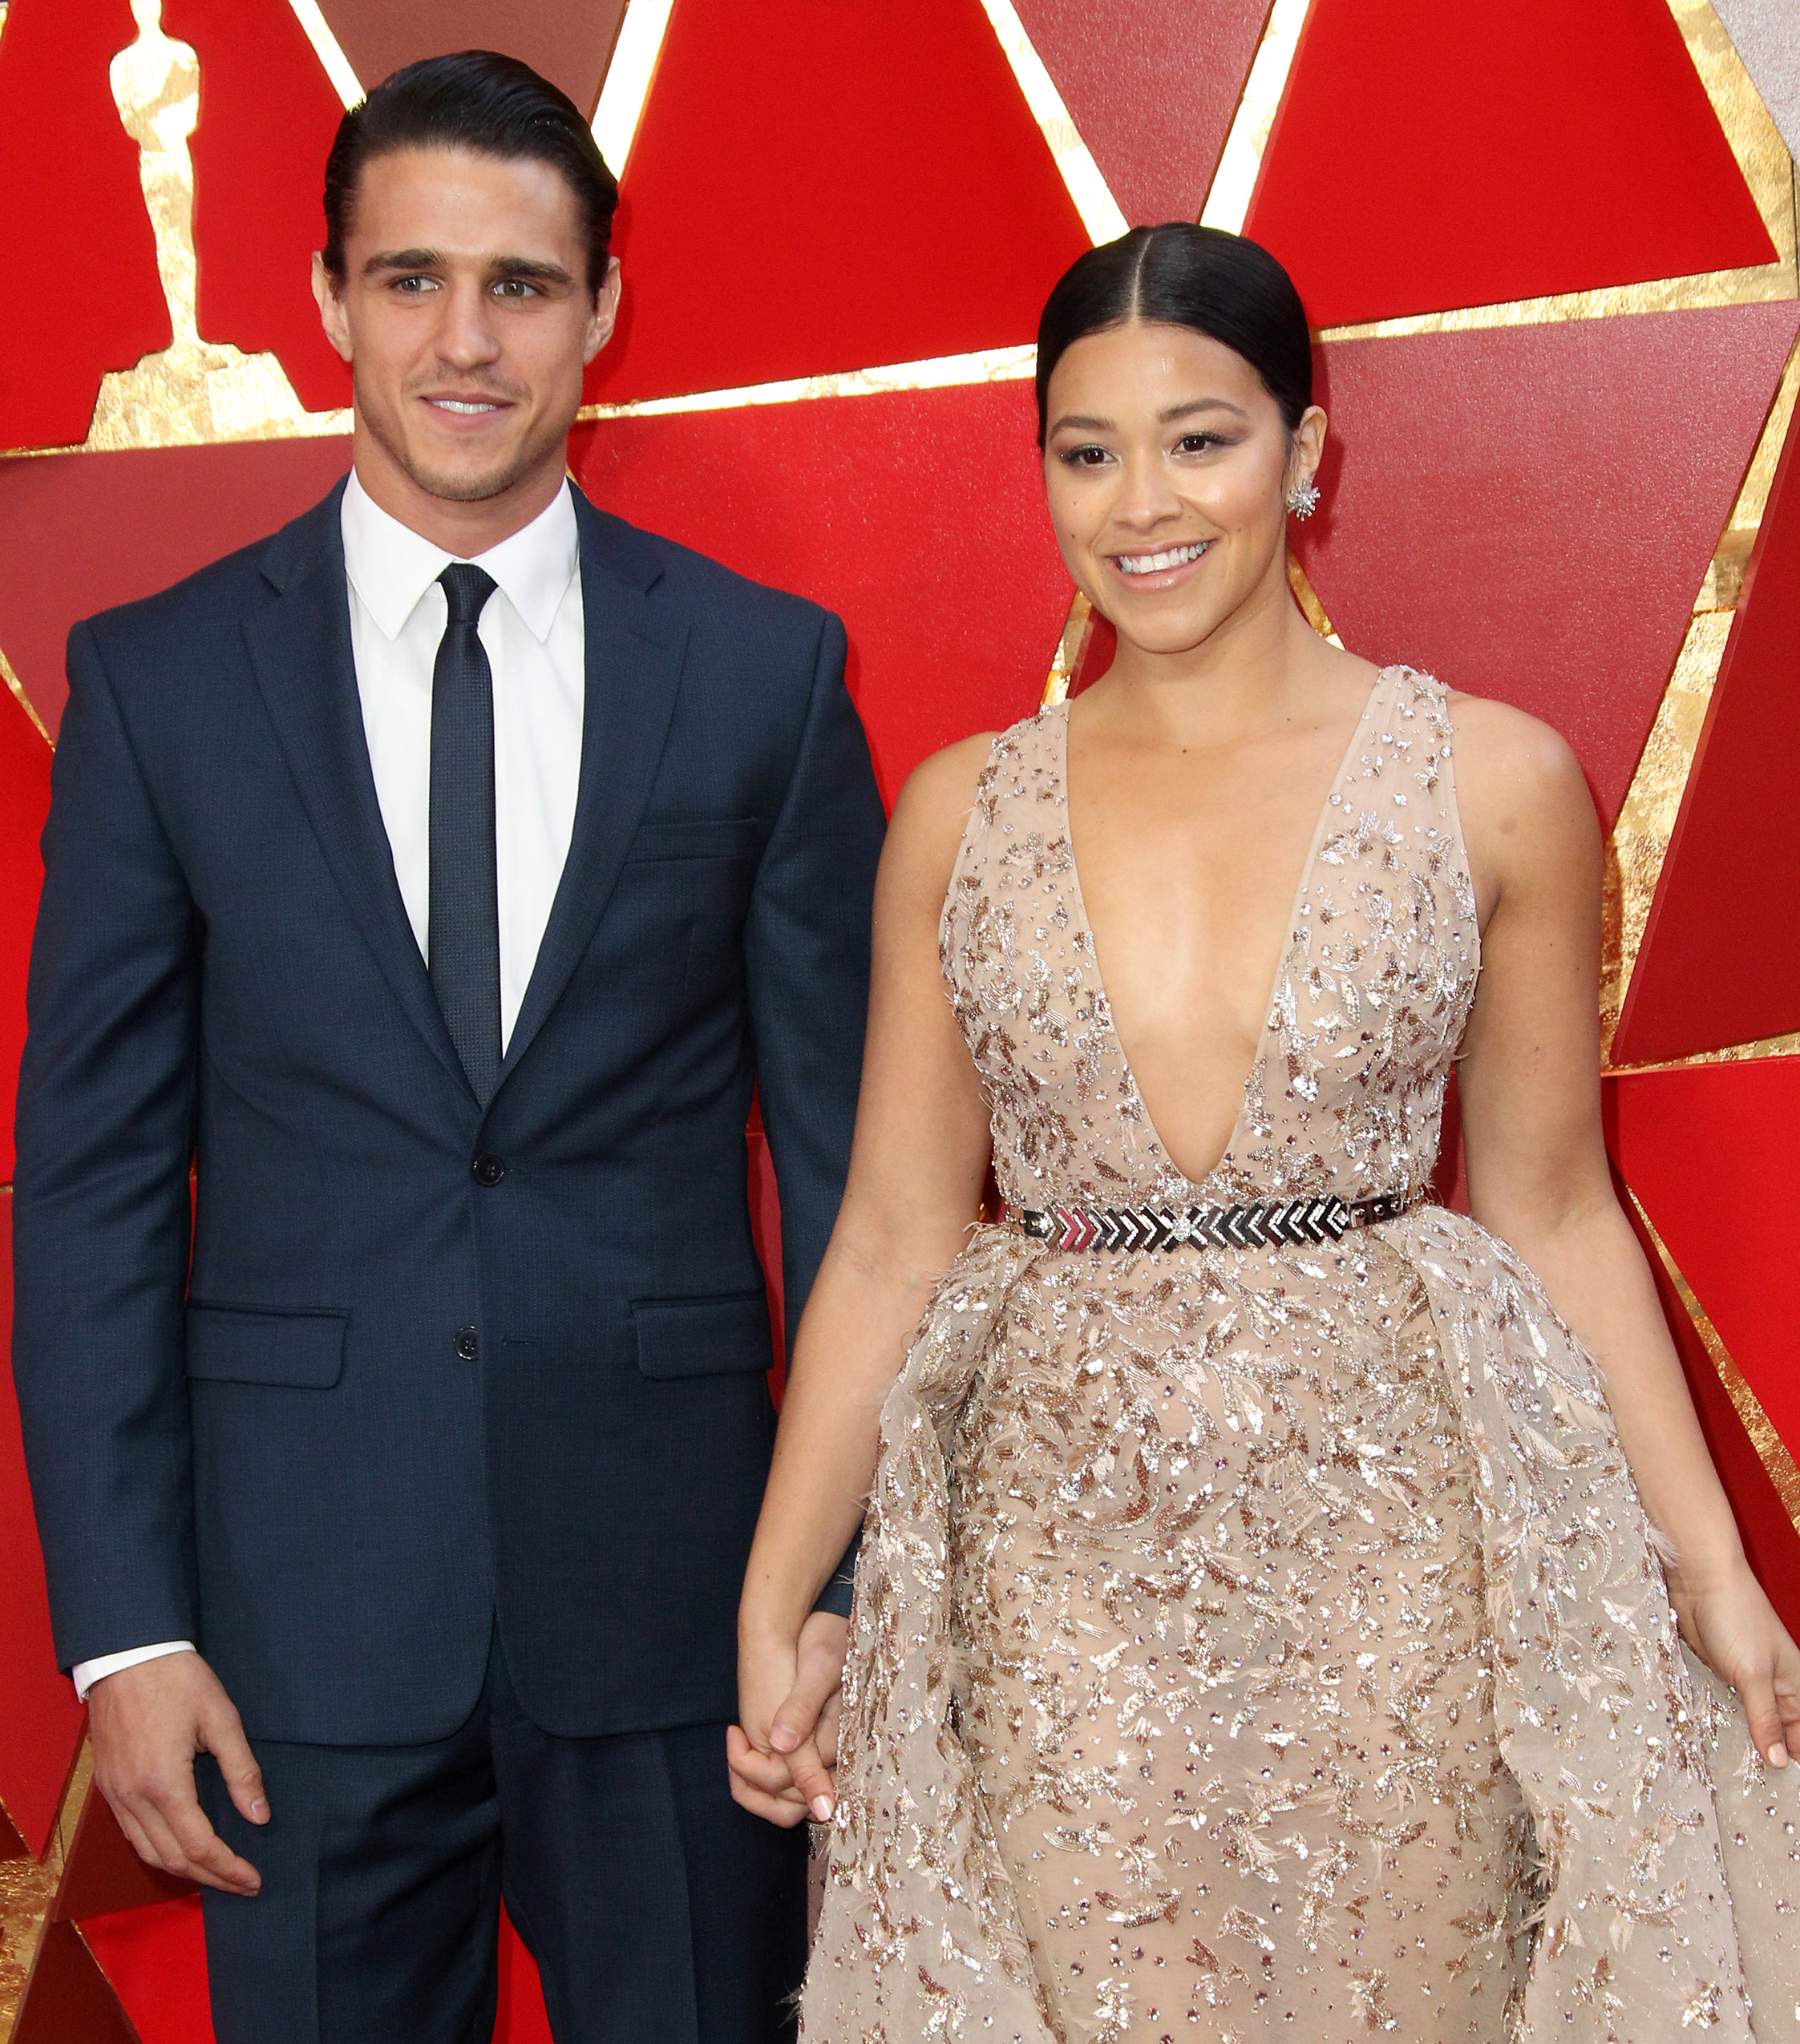 Gina Rodriguez and Joe LoCicero{&amp;nbsp;}arrive at the 90th Annual Academy Awards (Oscars) held at the Dolby Theater in Hollywood, California. (Image: Adriana M. Barraza/WENN.com) <p></p>